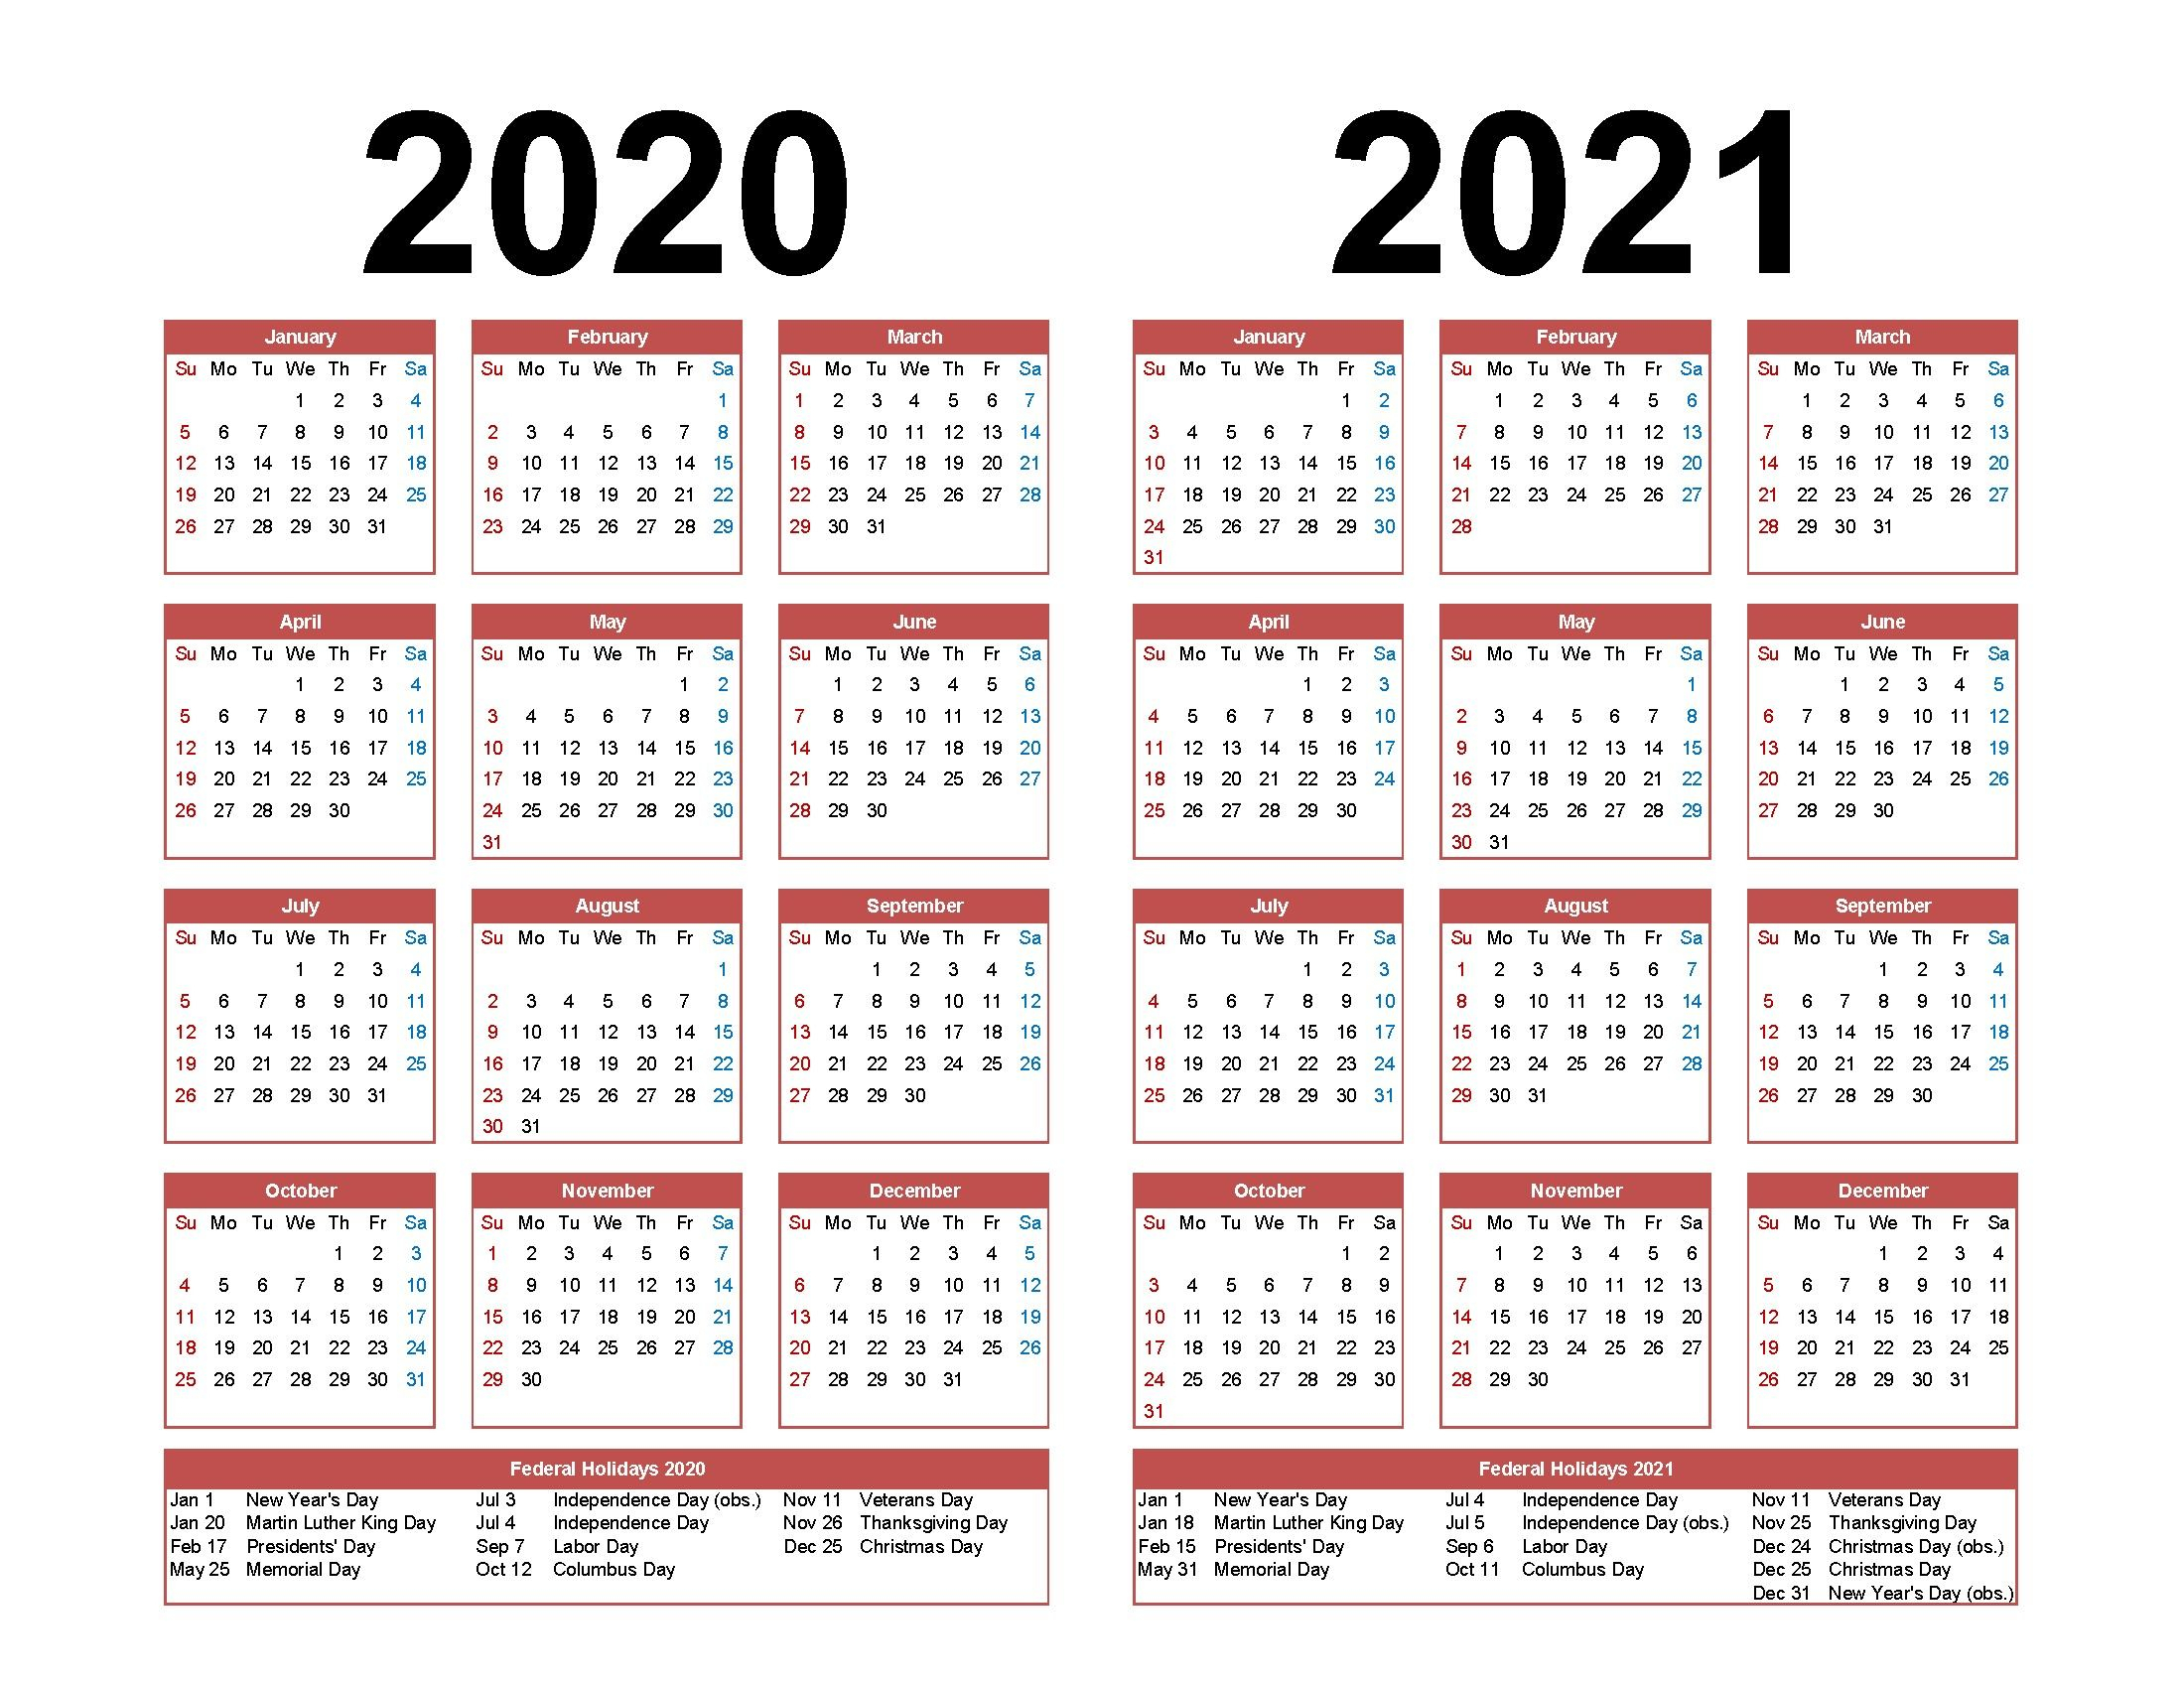 Online Printable Calendar 2021 2 Years In 2020 | Printable with 2021-2021 Monthly Planner: 2 Years